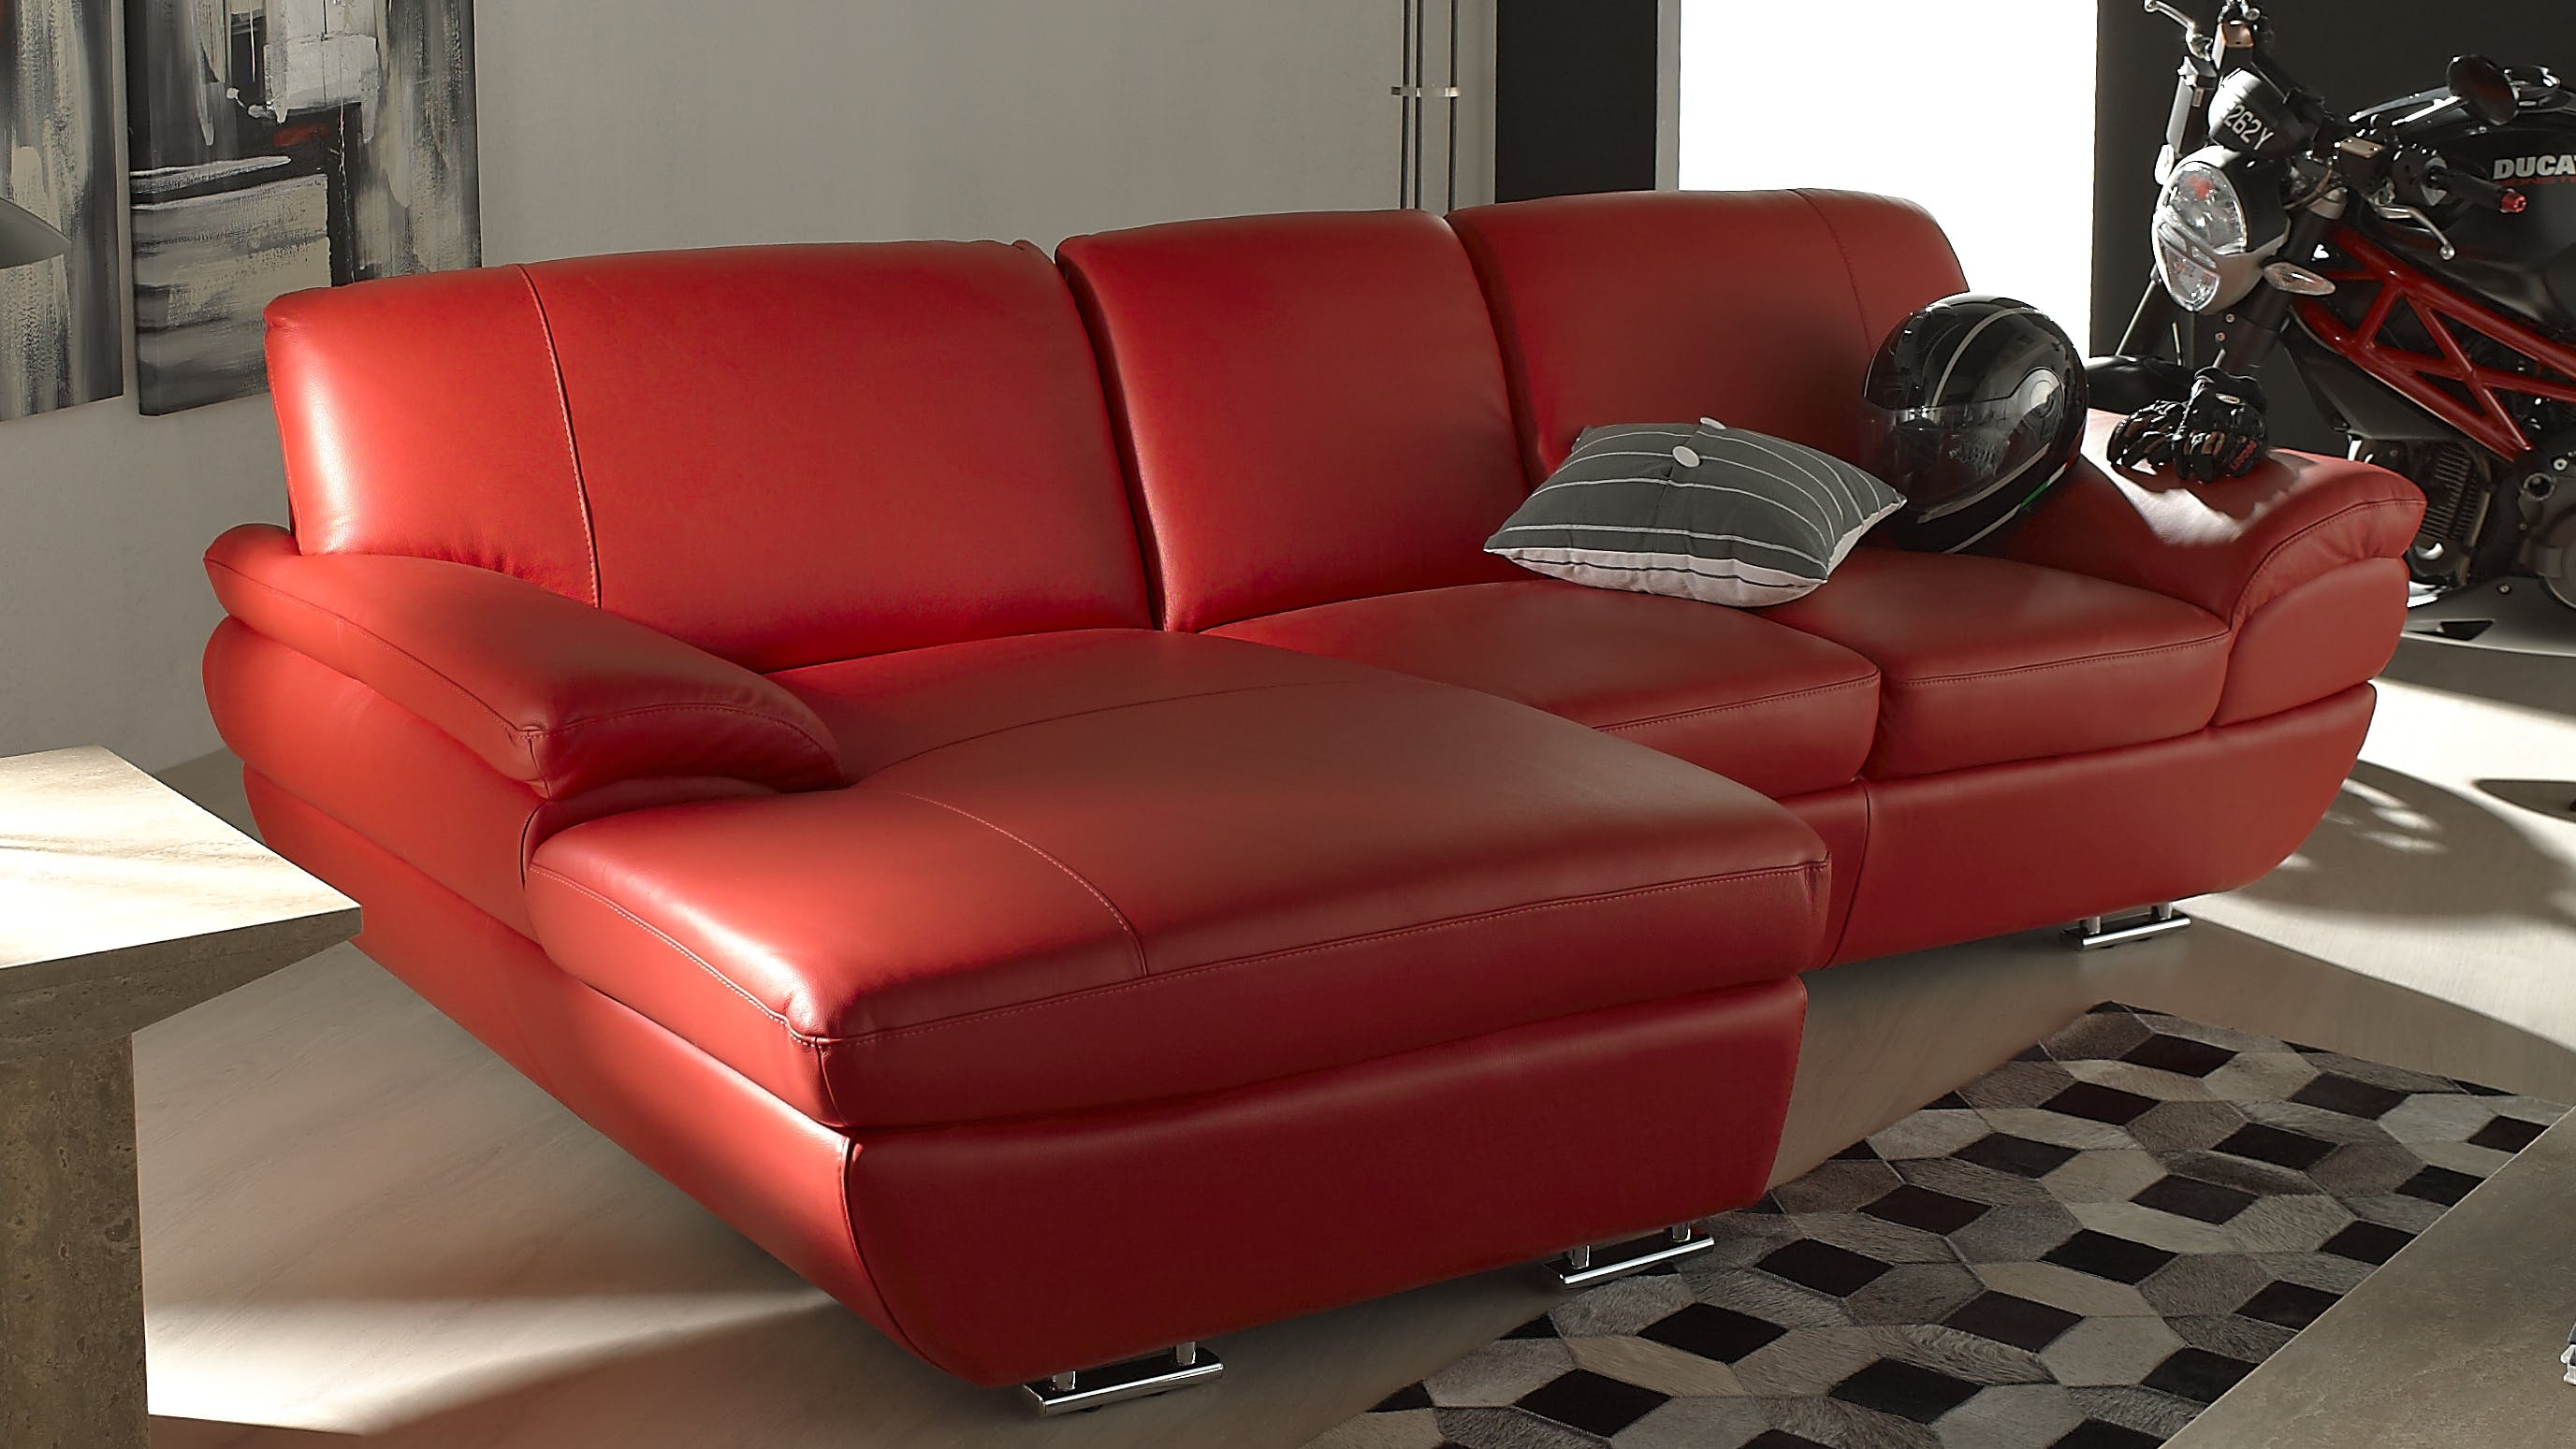 Saporini marta full leather 2 seater sofa with chaise for 2 seater lounge with chaise